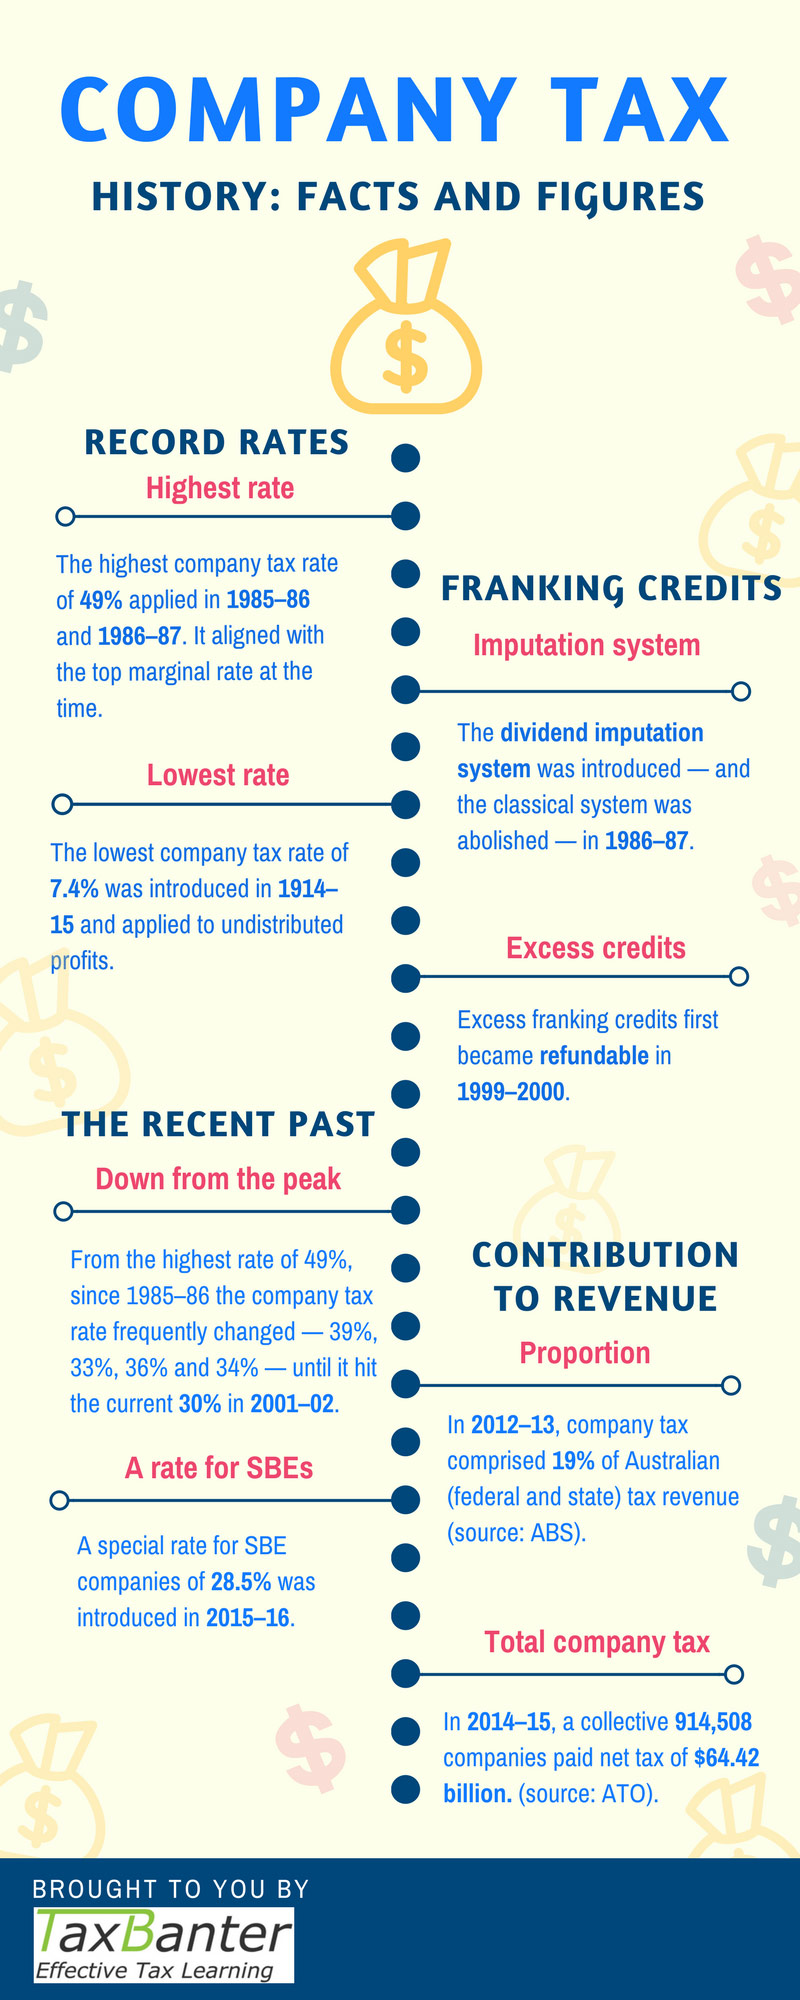 Company Tax Infographic by TaxBanter